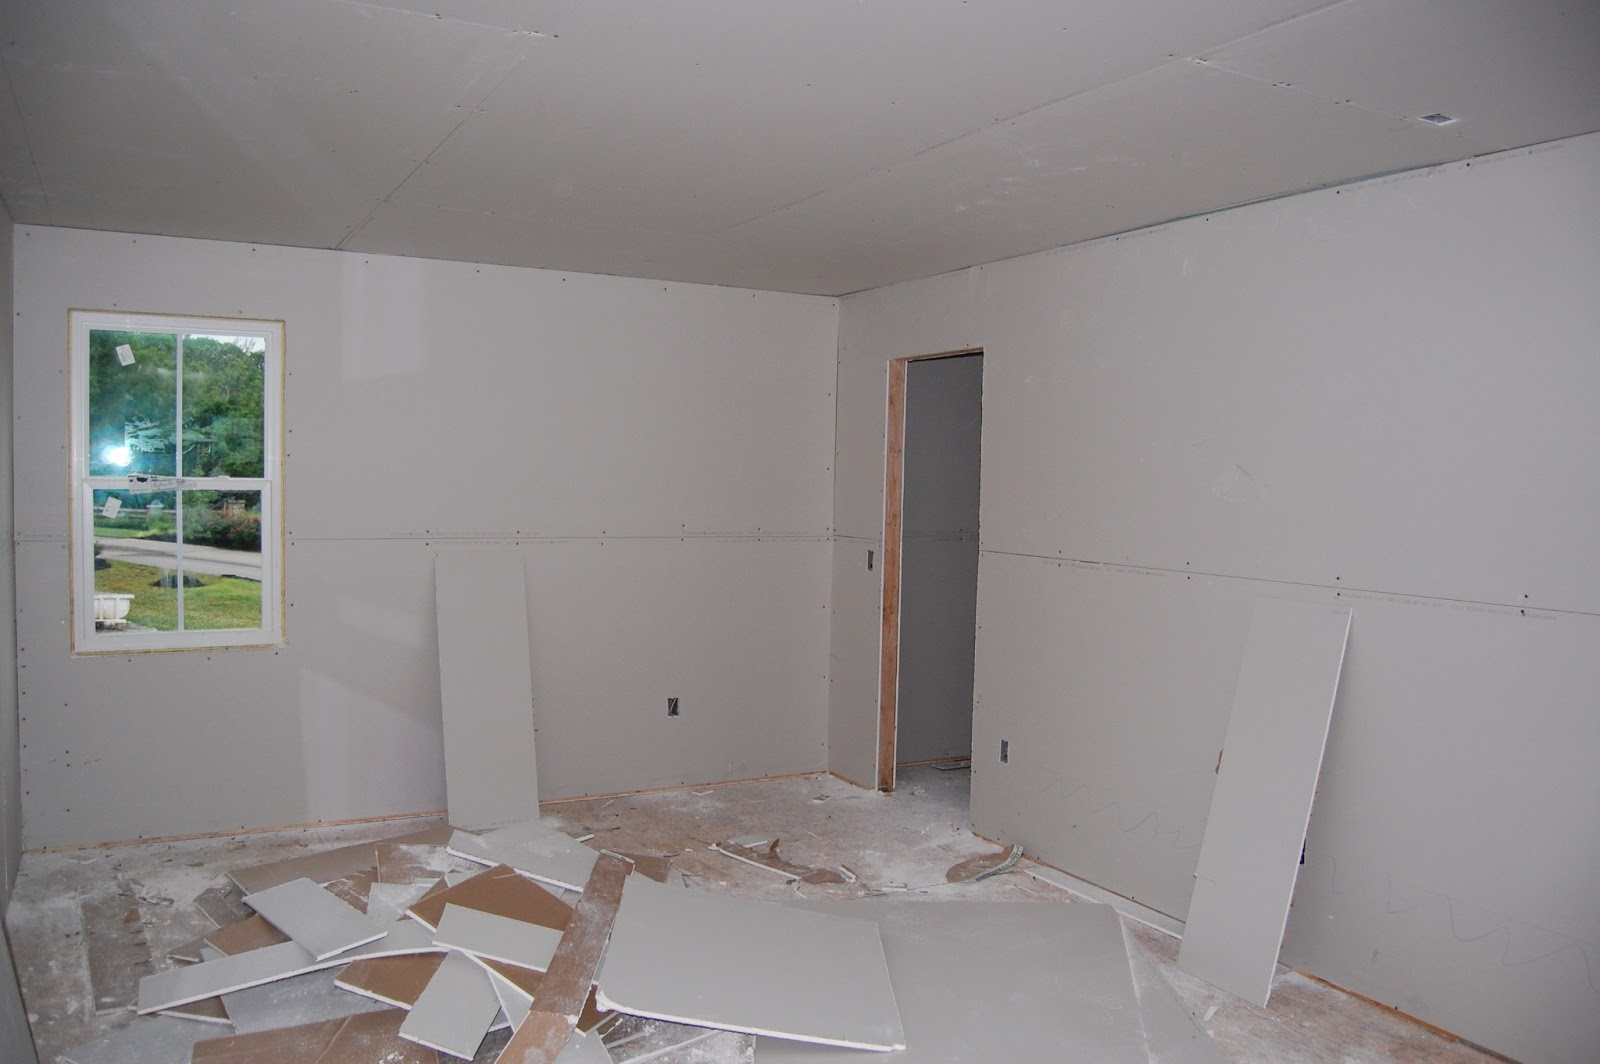 Building Our First Home With Ryan Homes Day 44 Drywall Started